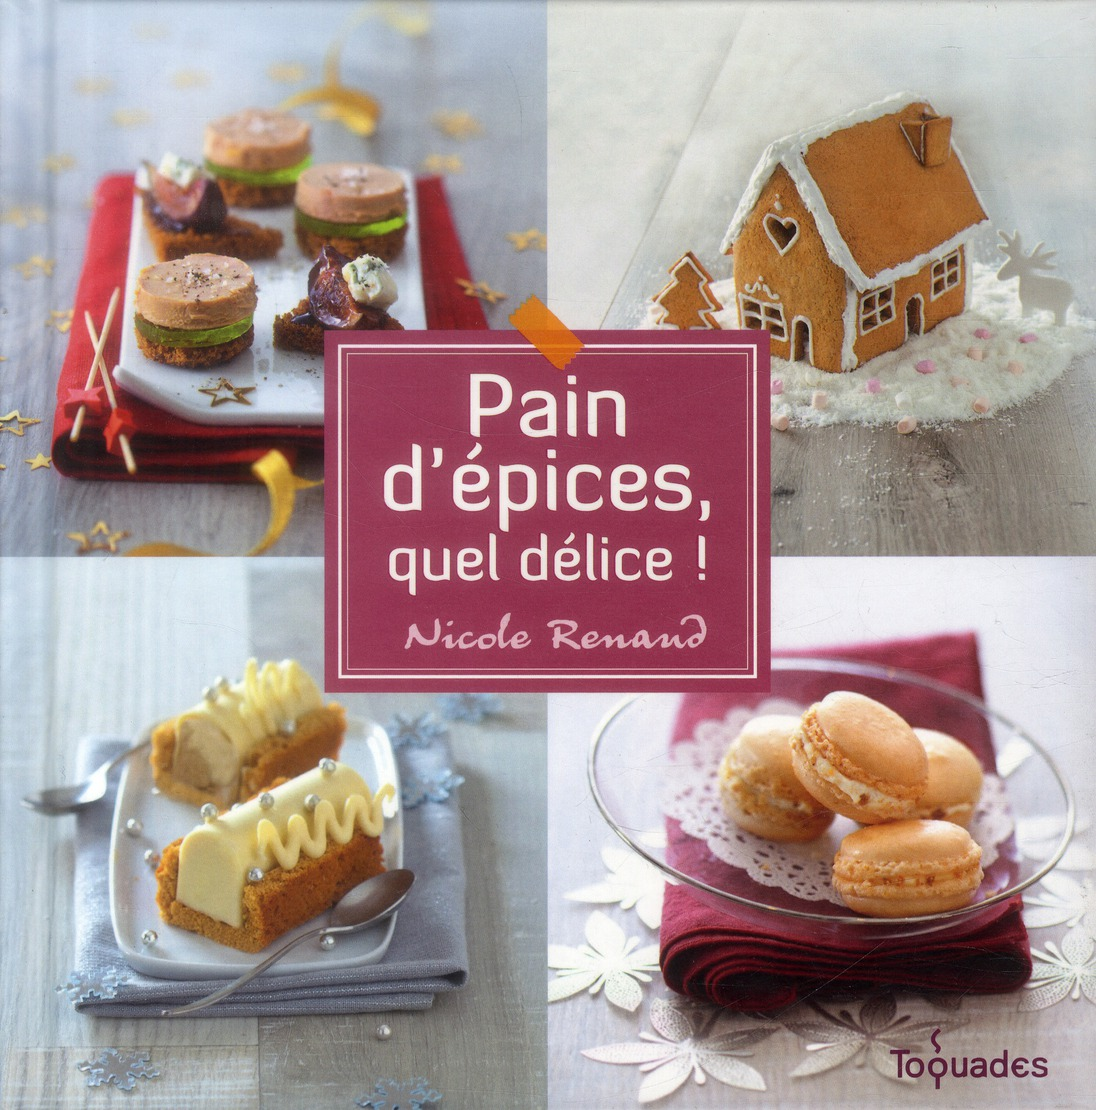 PAIN D'EPICES, QUEL DELICE !